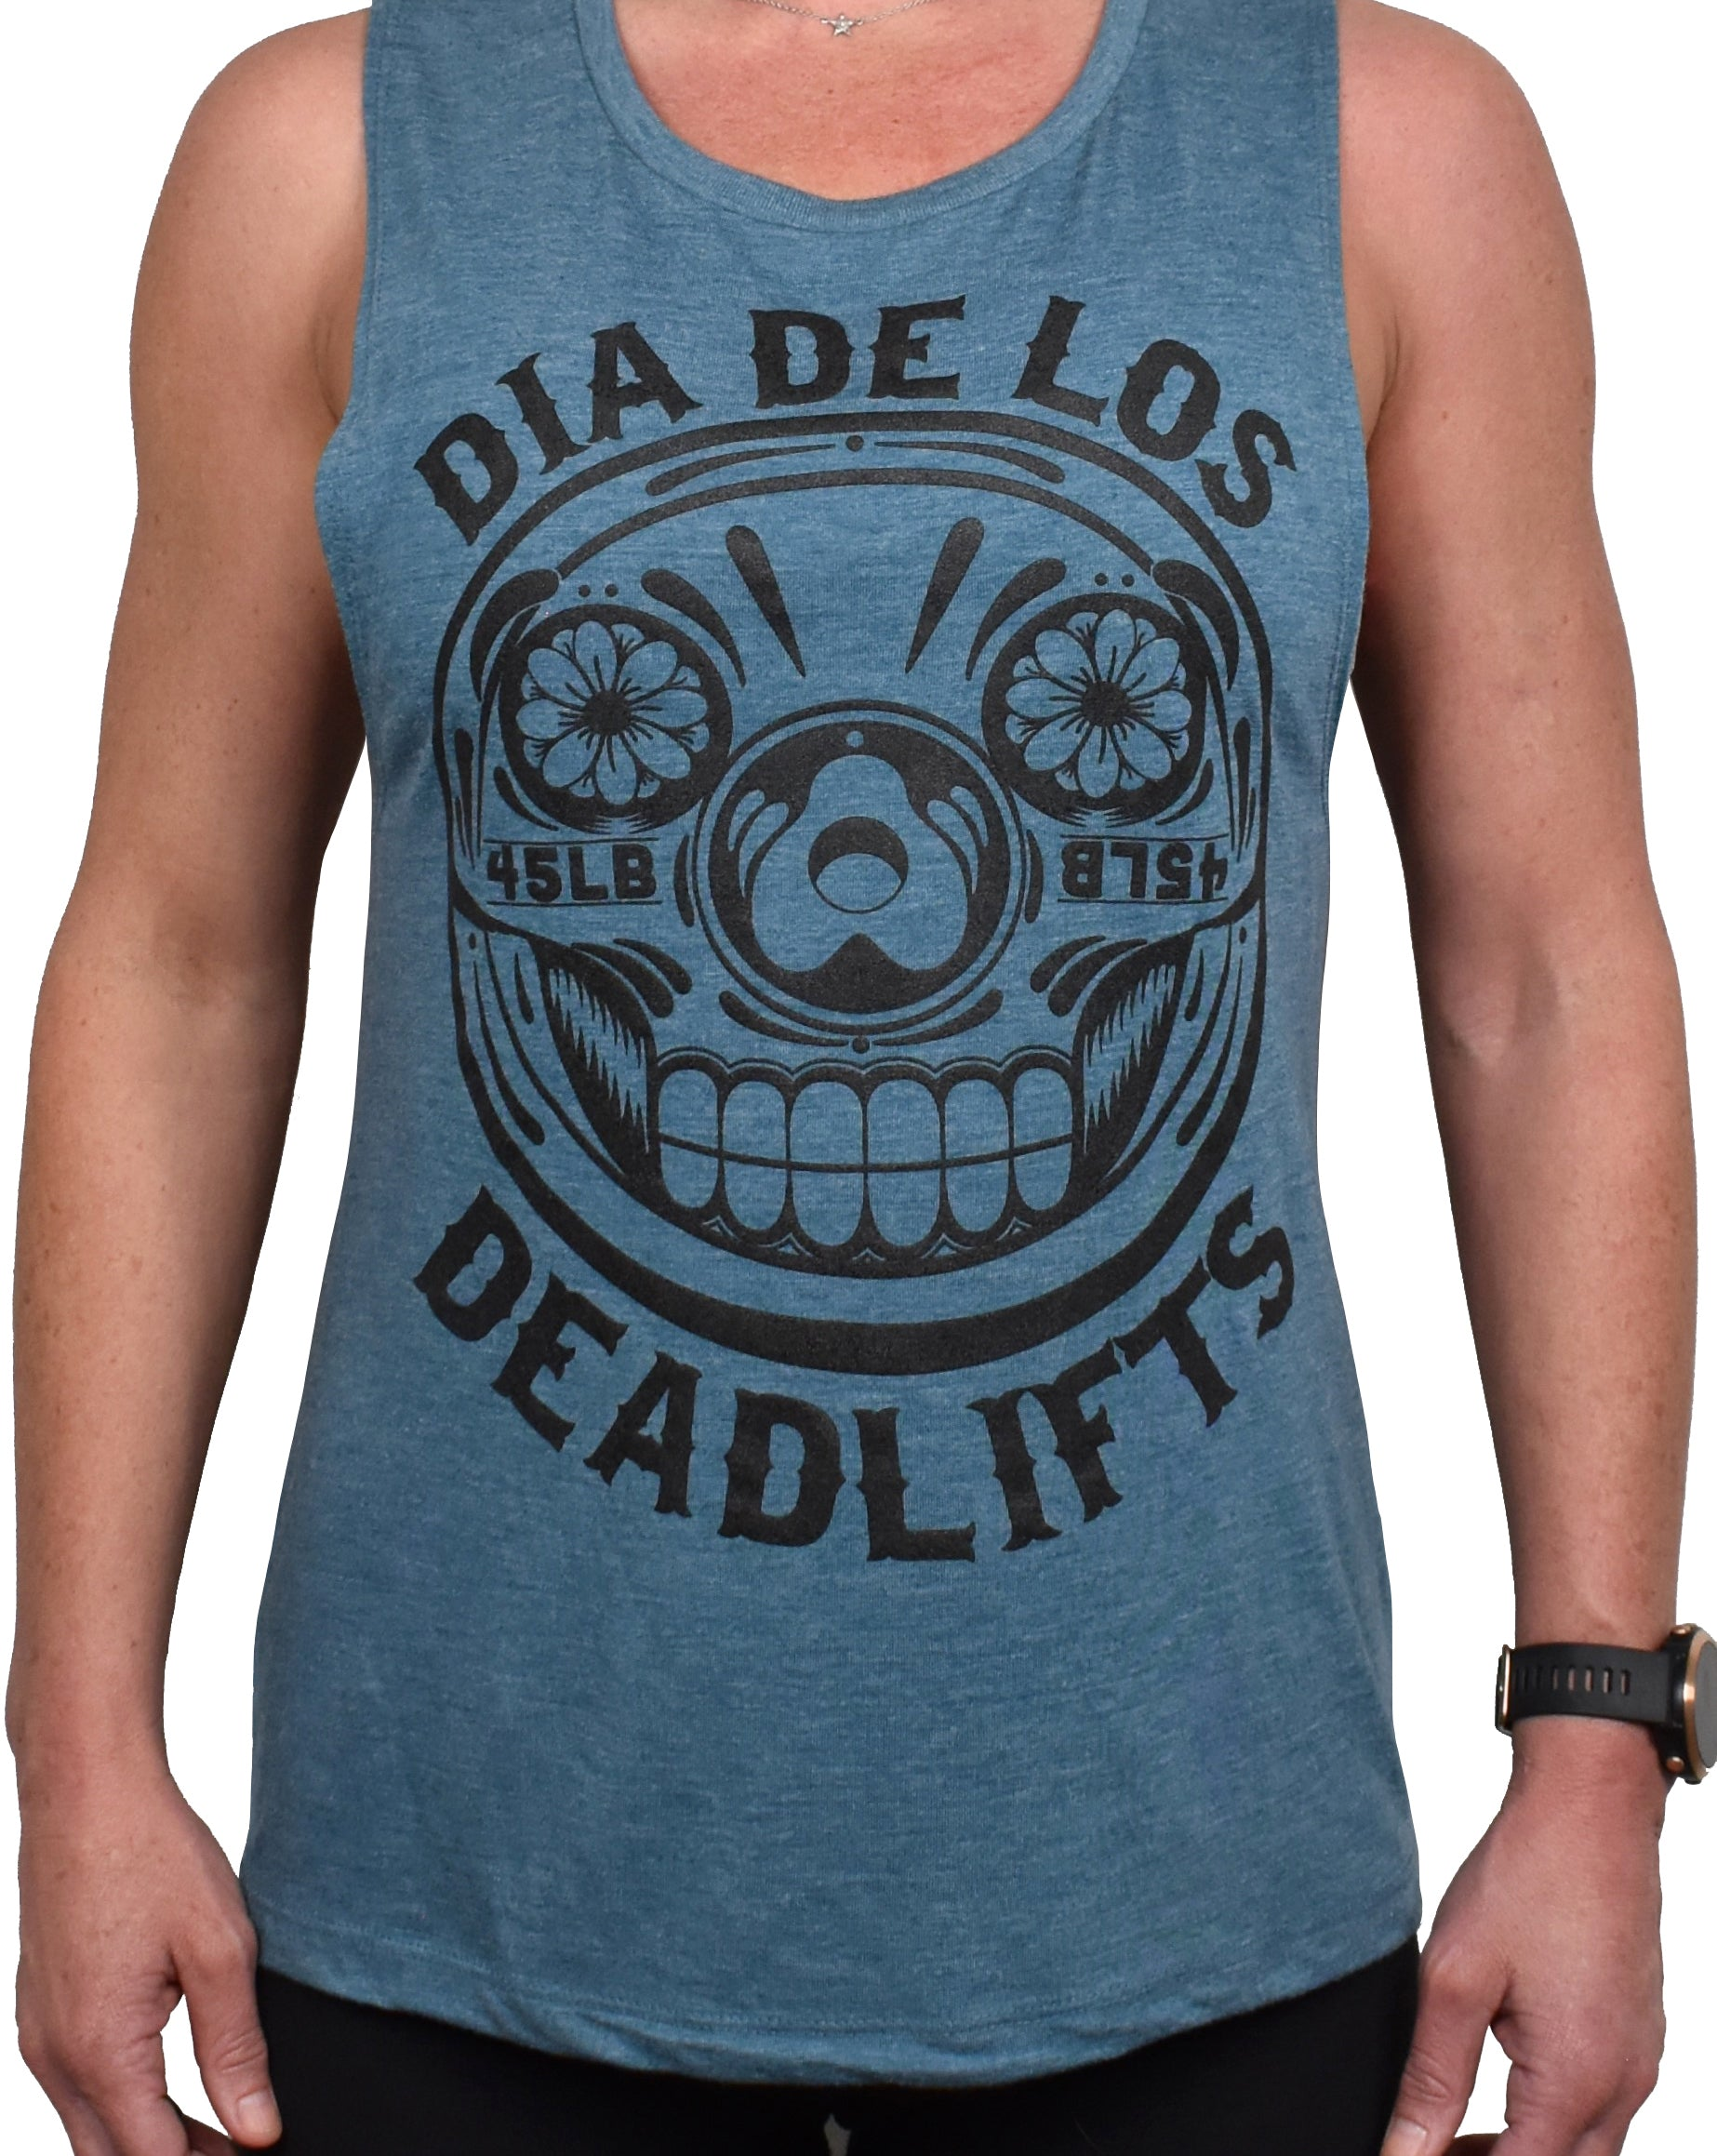 Women's 'Dia de los Deadlifts' Muscle Tank - Black on Marine